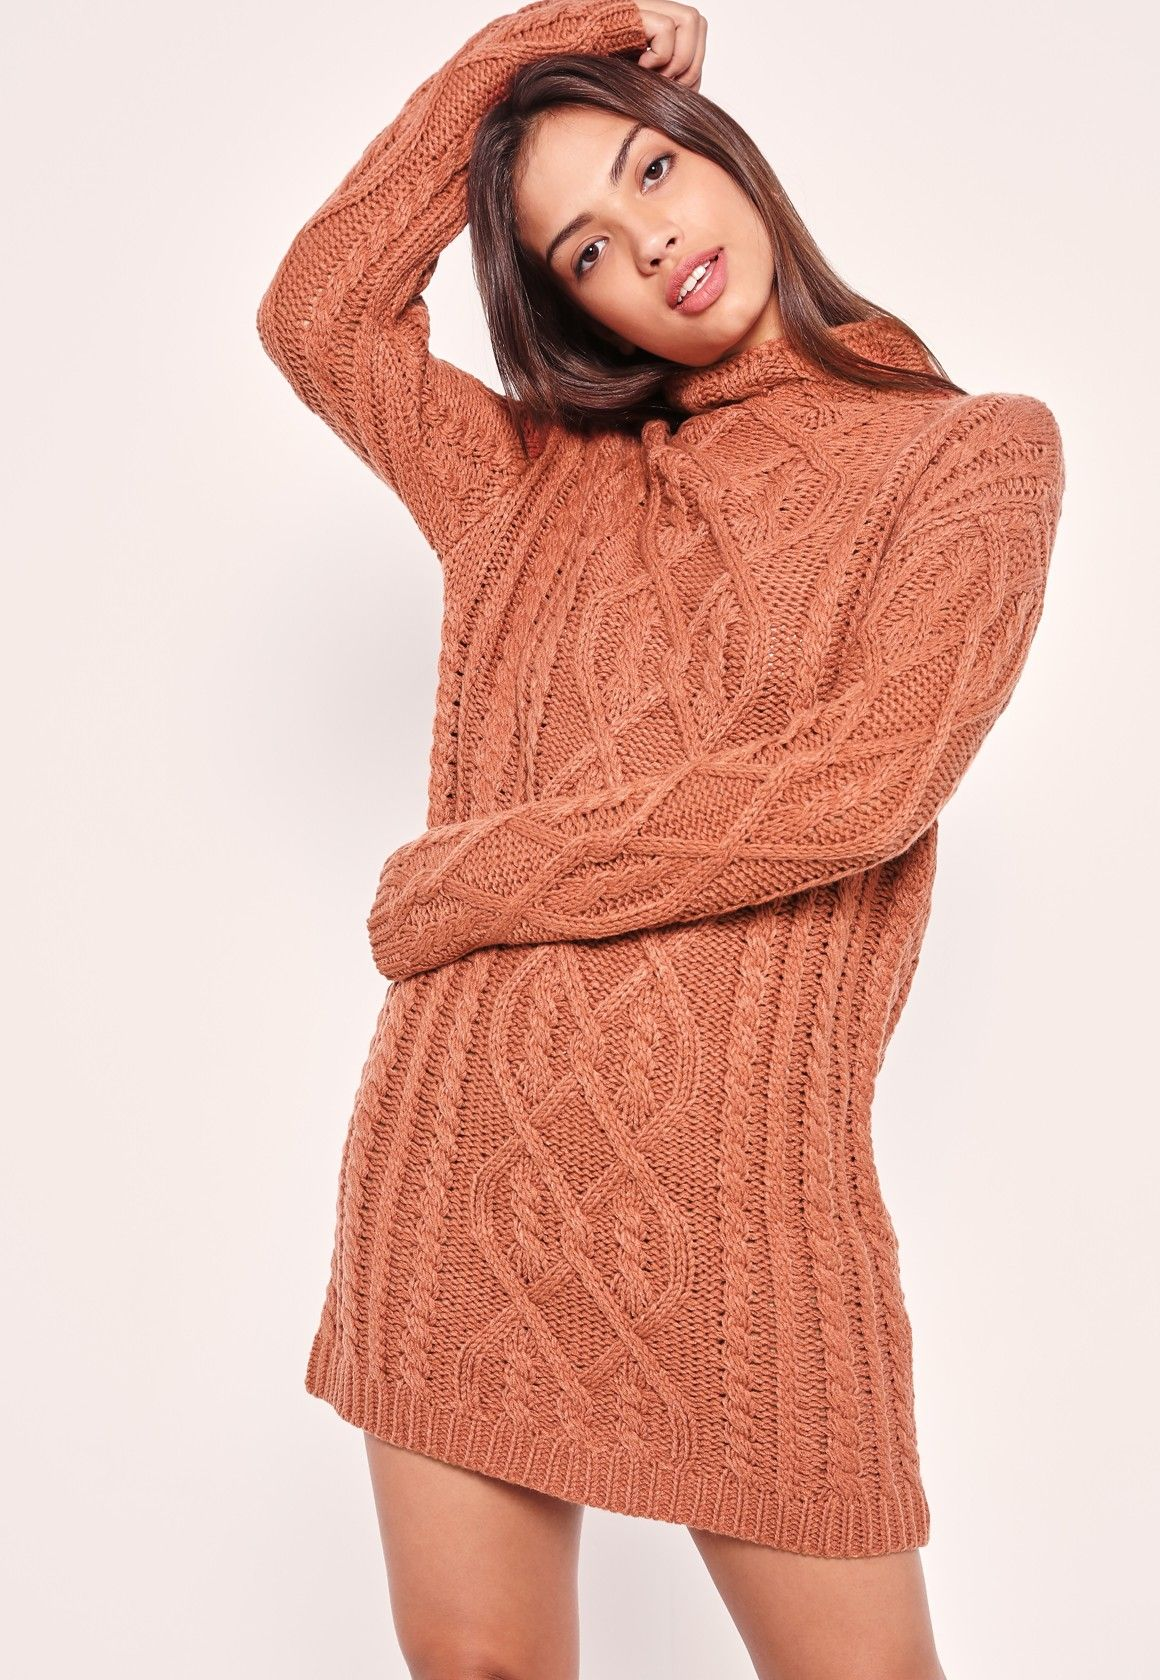 Holla at new season and tell it we're going oversized! Get your knit fix in this clay pink sweater with cable knit and an oversized fit.